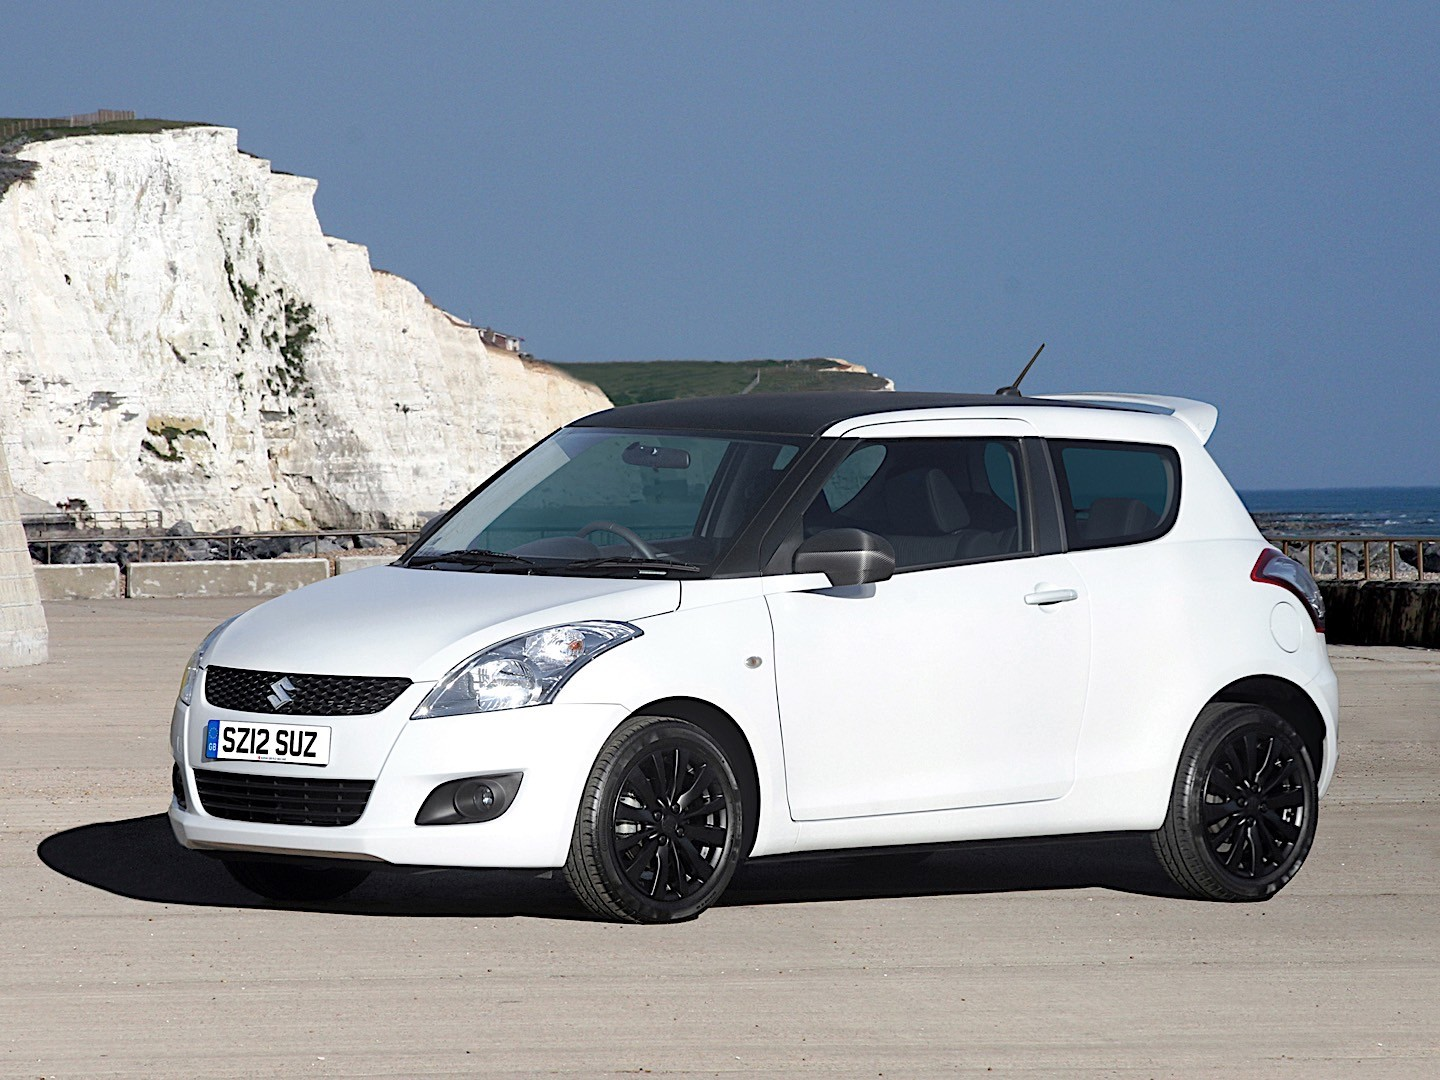 suzuki swift 3 doors specs 2010 2011 2012 2013 2014 autoevolution